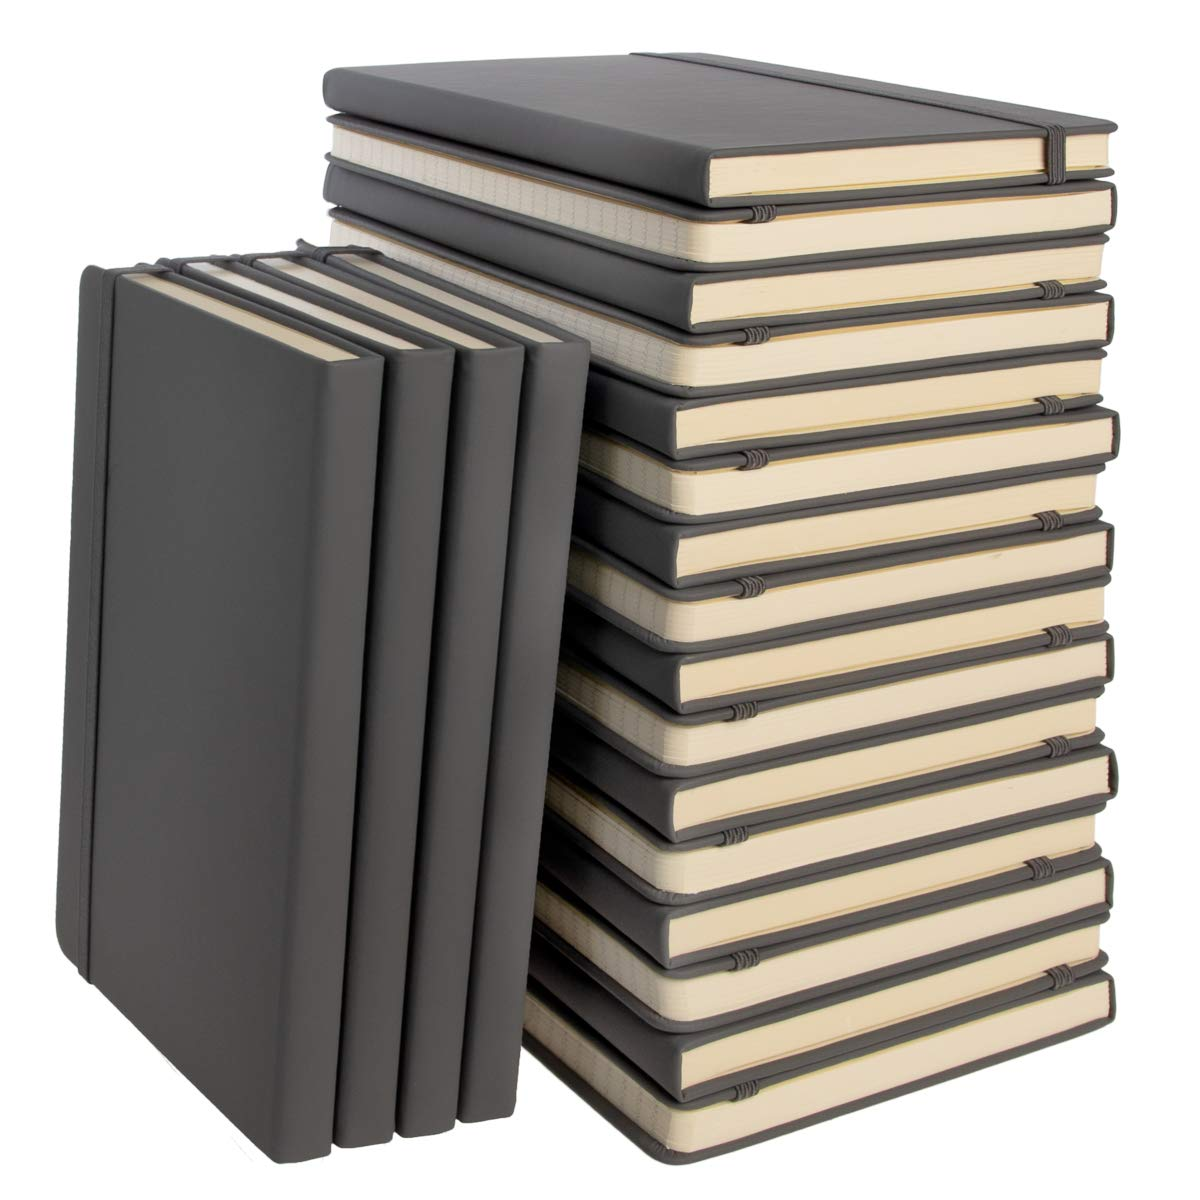 Simply Genius (20 Pack) A5 Hardcover Leatherette Journals to Write in for Women, Faux Leather Journal for Men, Writing Journal Notebook Lined, 192pg Ruled, 5.7'' x 8.4'' by Simply Genius